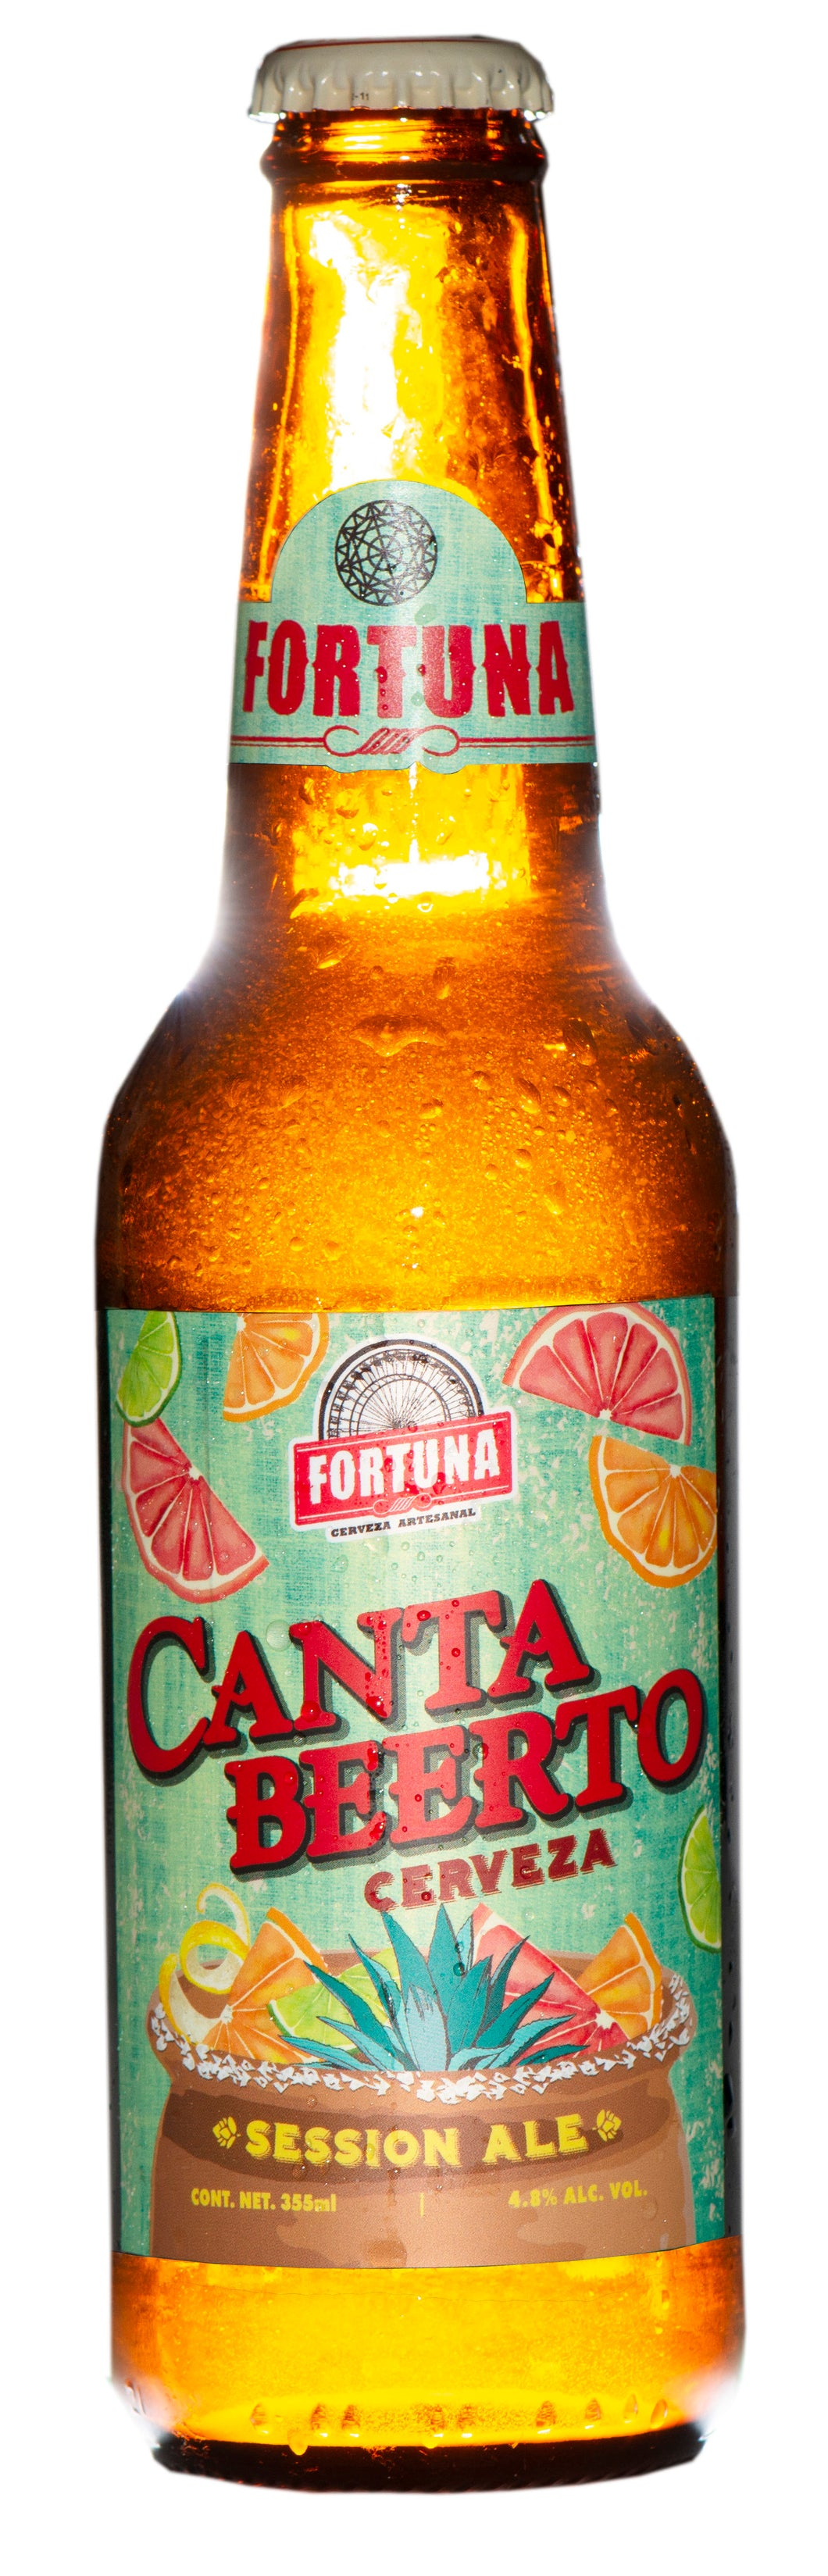 Fortuna Cantabeerto 4.5% abv - 12 bottles